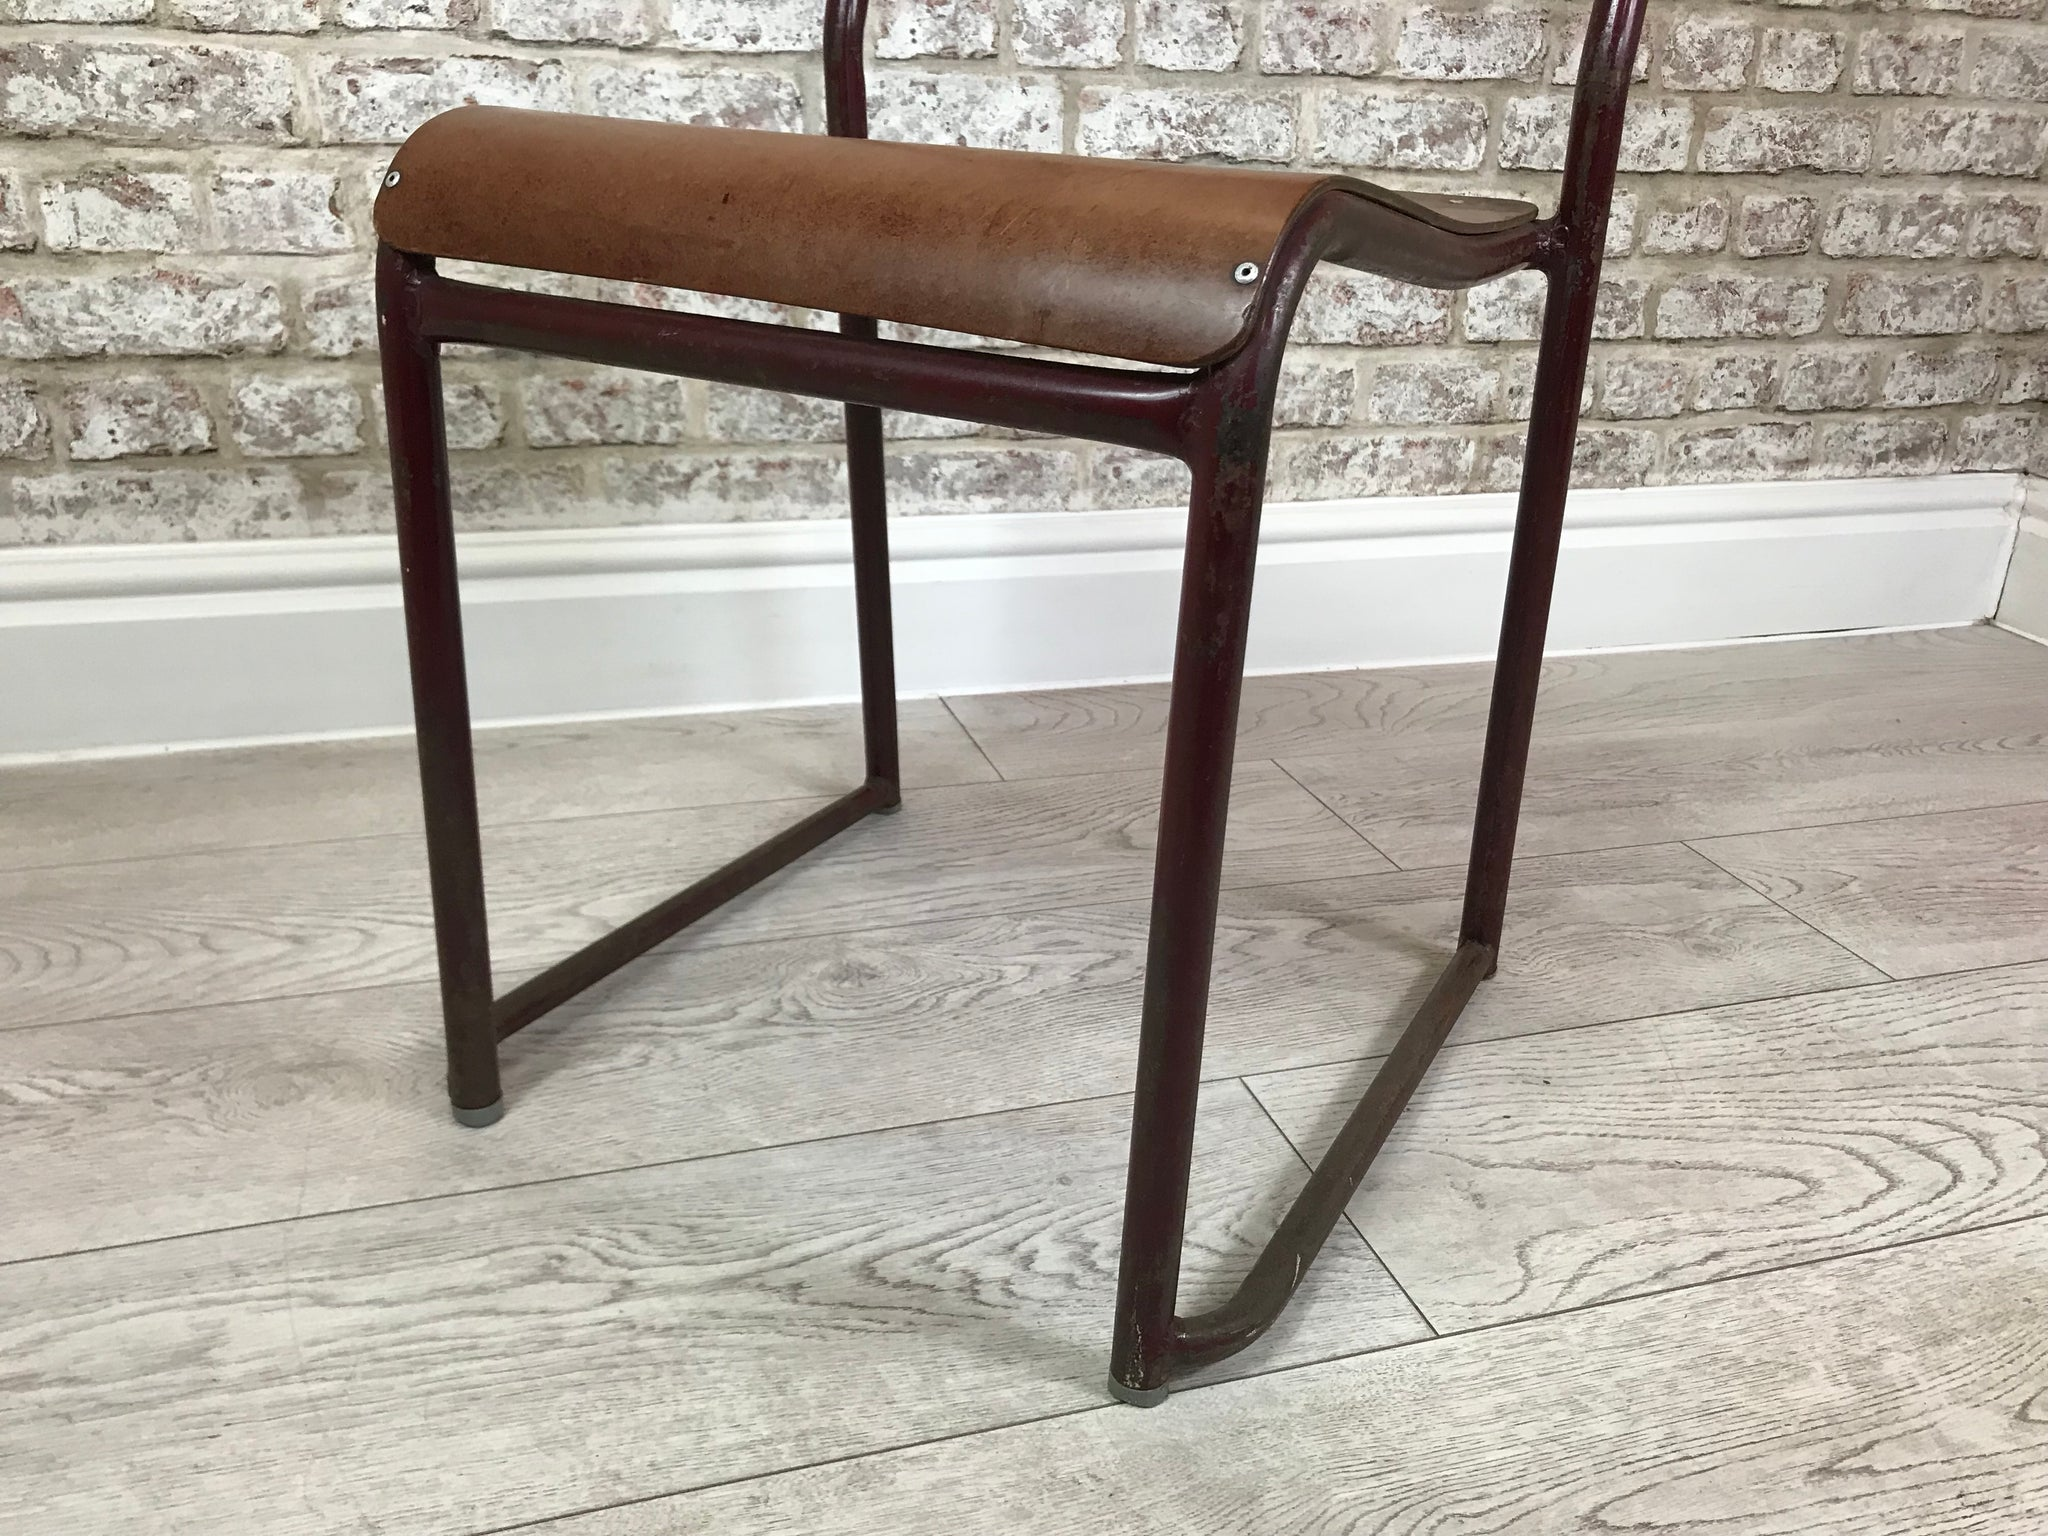 Vintage Metal Framed School Chair Circa 1950s